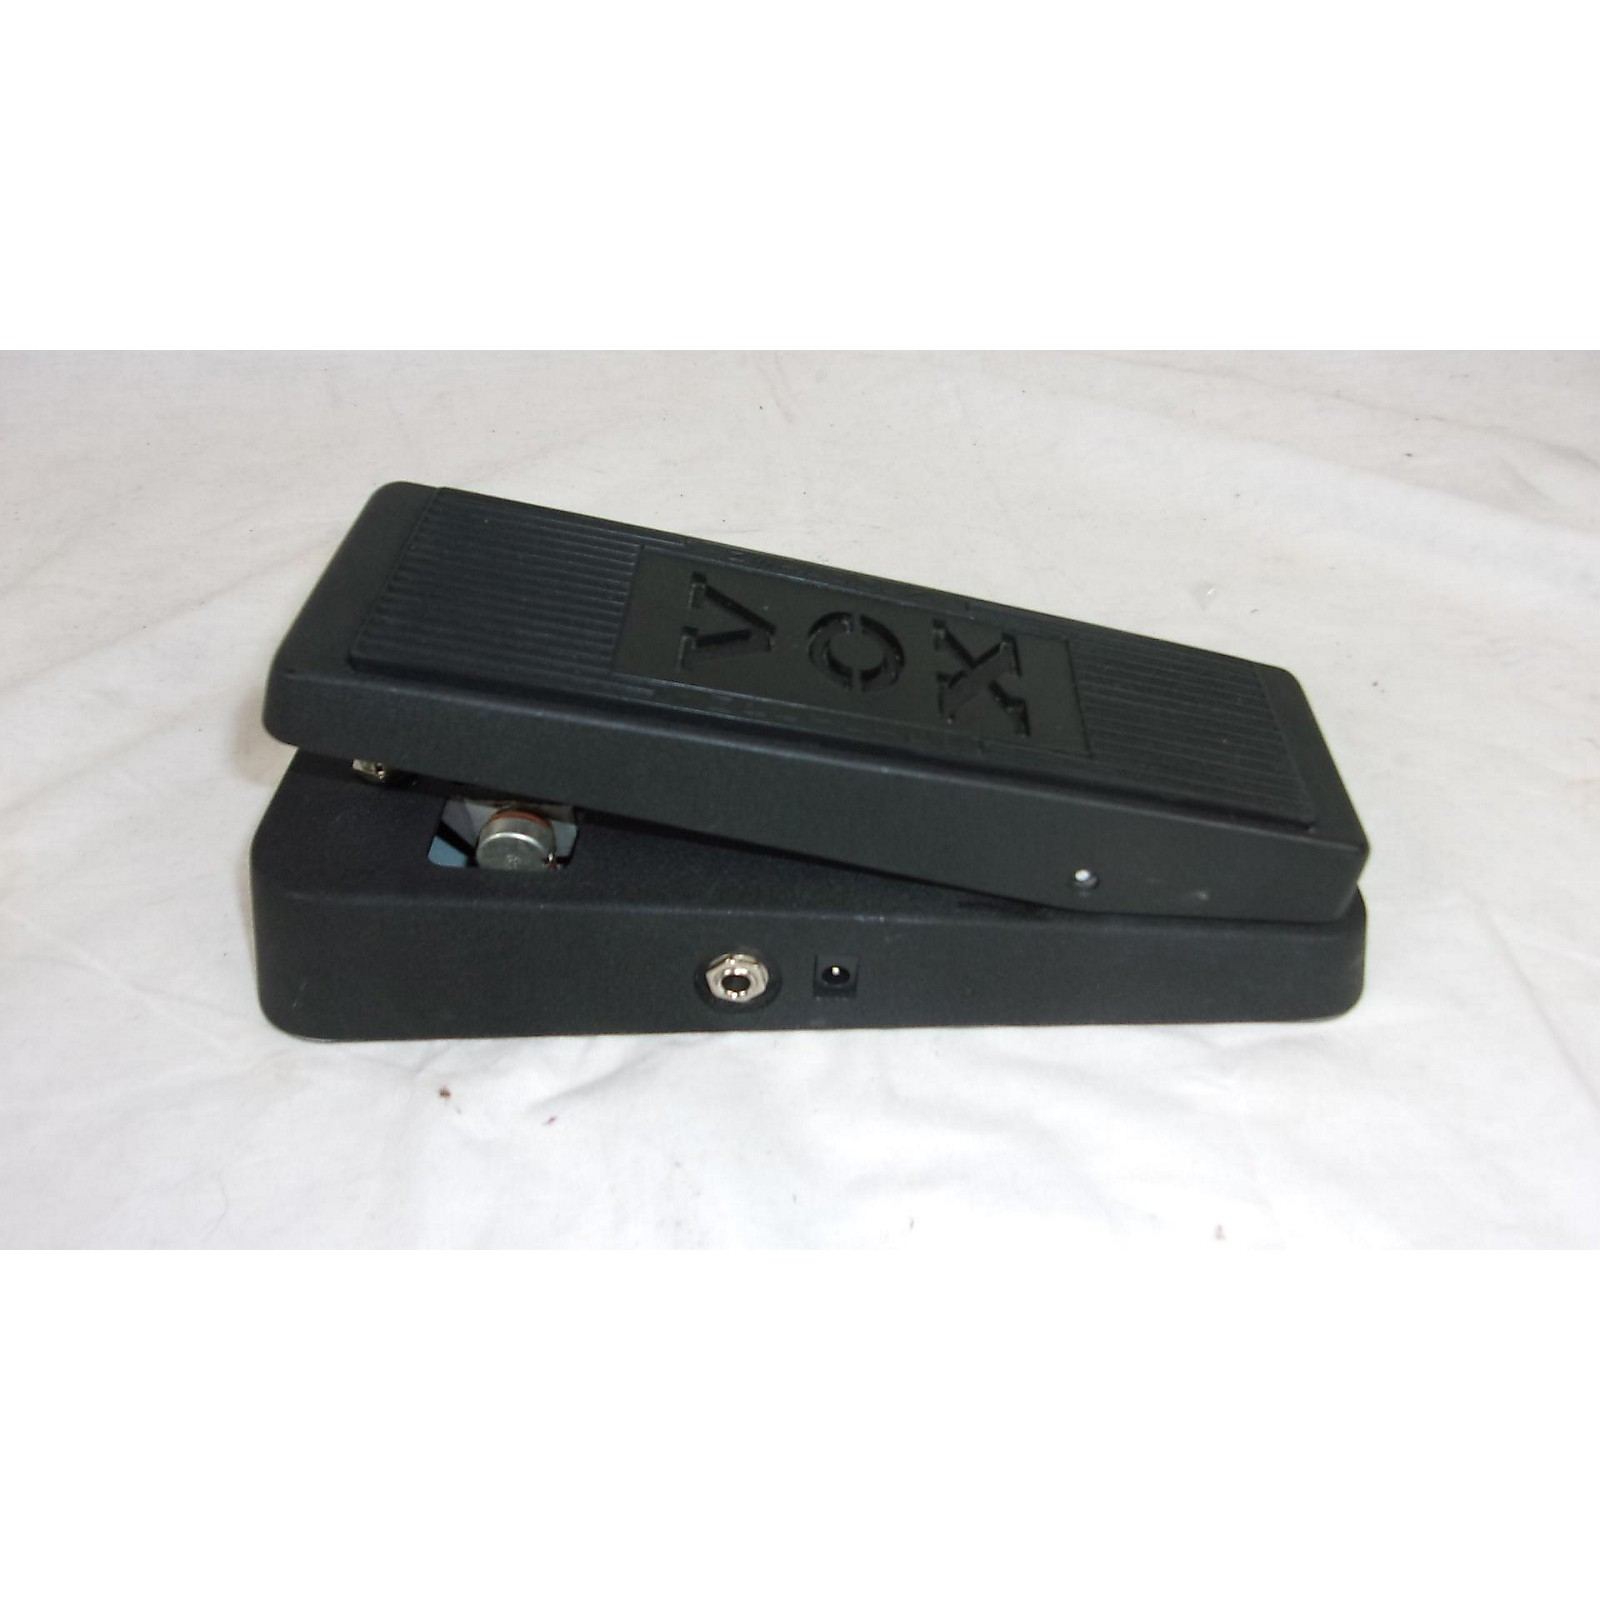 Vox V845 Classic Wah Effect Pedal